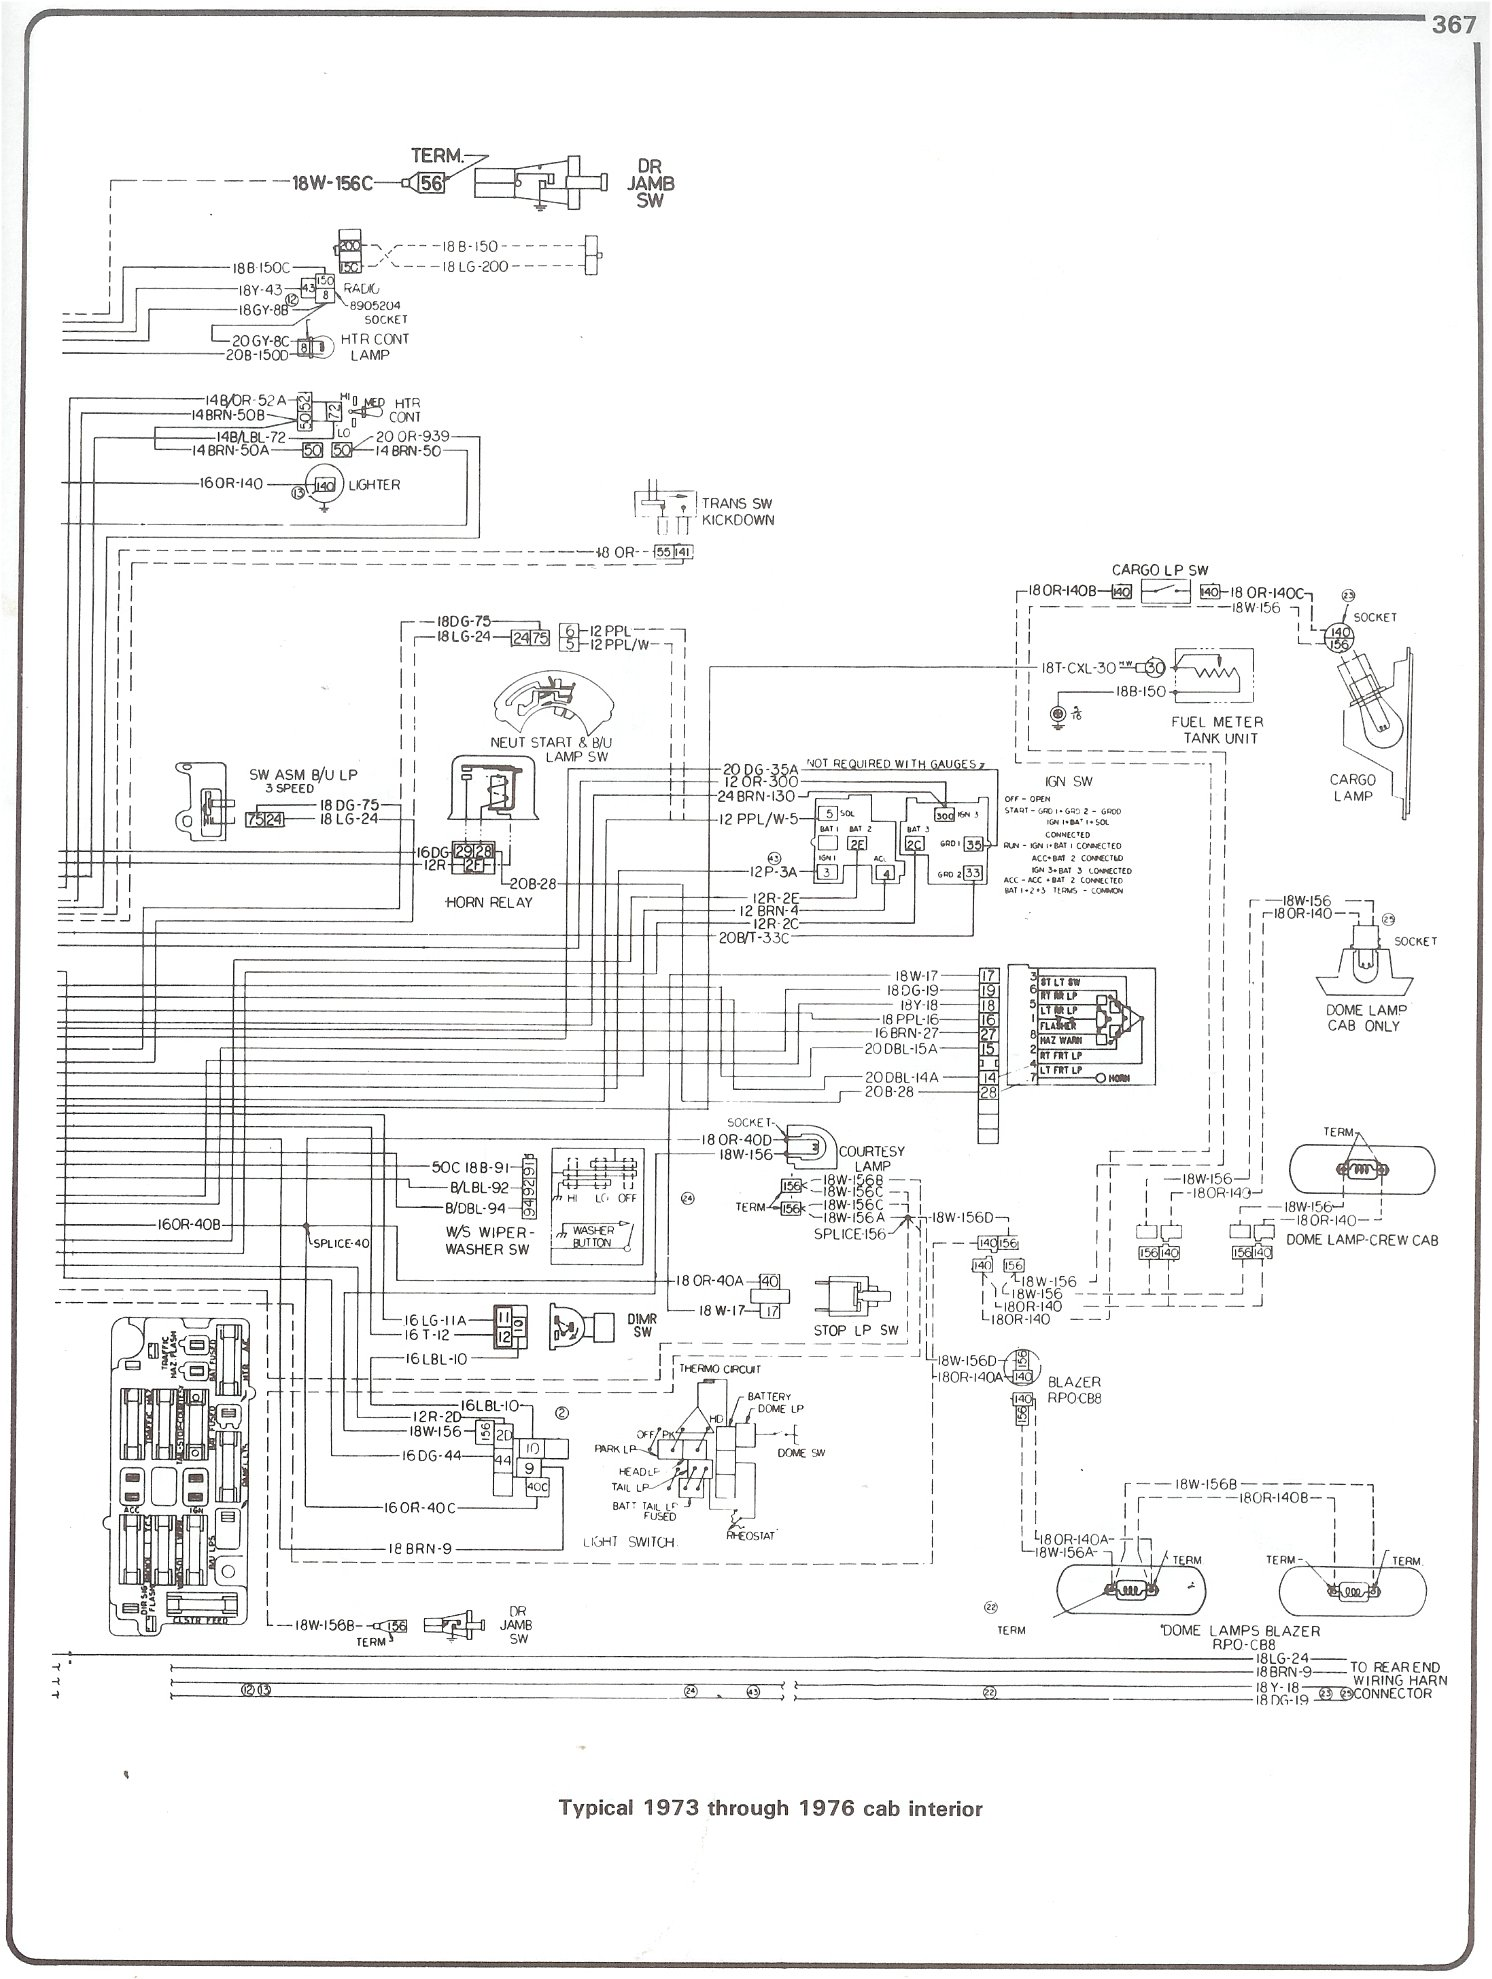 1988 C30 Wiring Diagram Diagrams Dodge Symbols Complete 73 87 Rh Forum 87chevytrucks Com Automotive